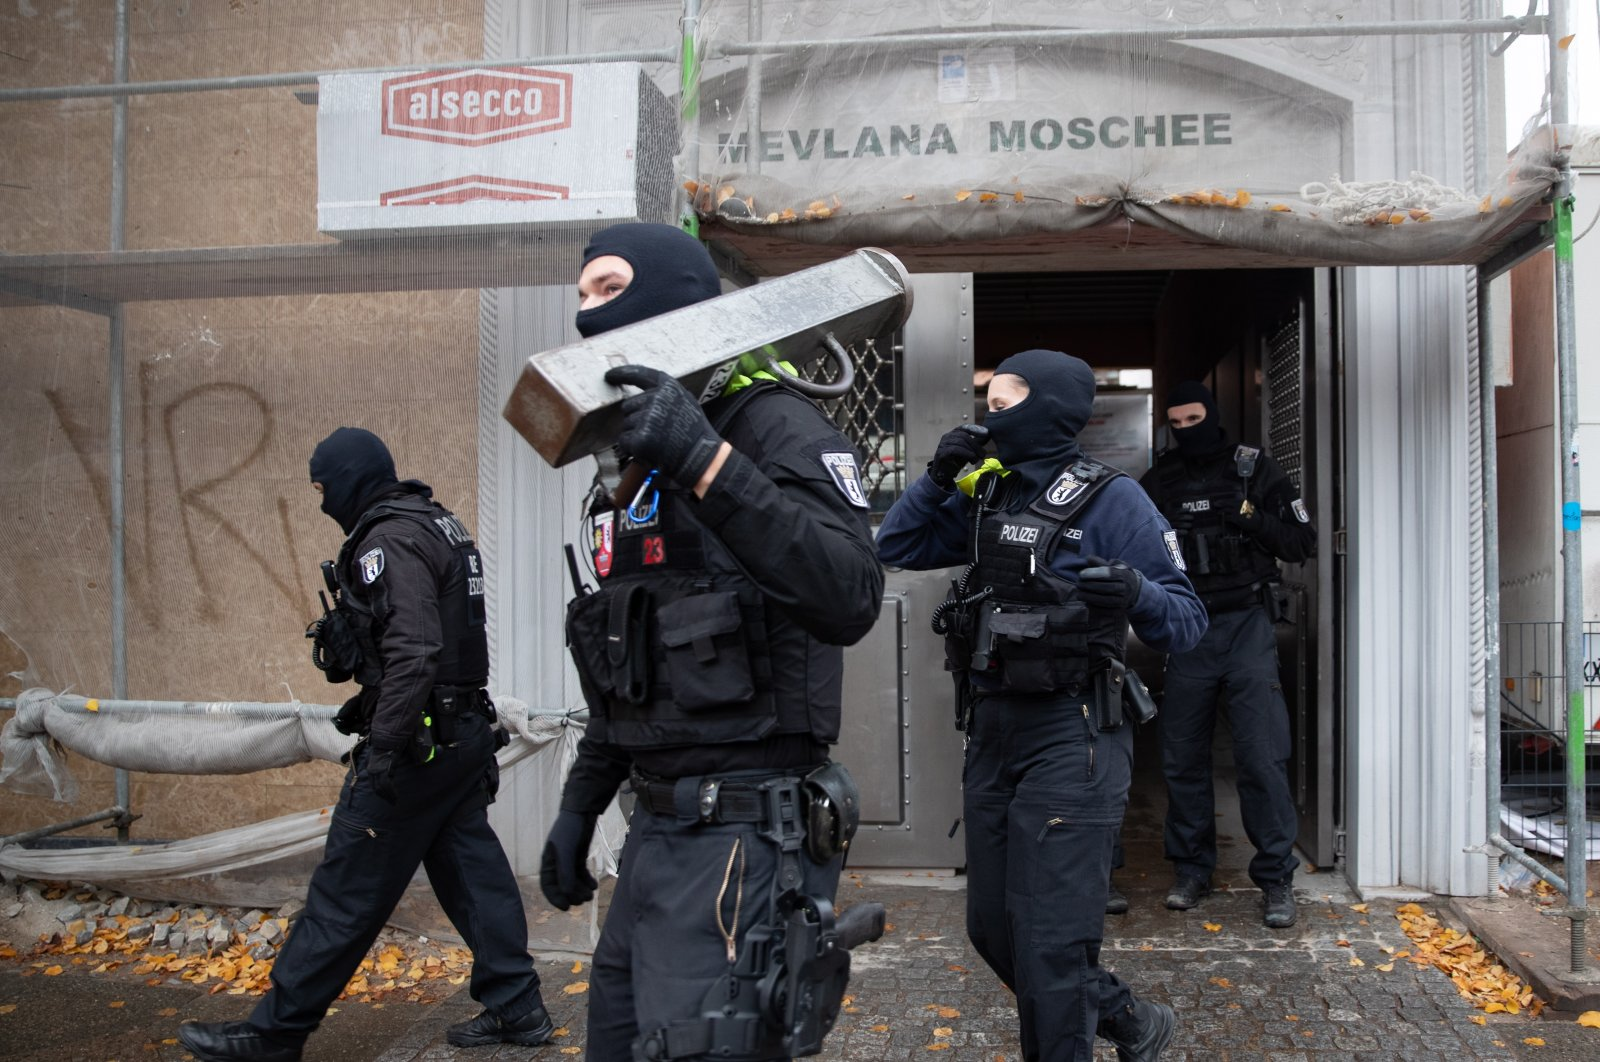 Police officers carry a metal bar to break doors in front of the entrance of Mevlana Mosque in Berlin-Kreuzberg during a police raid, in Berlin, Germany, Oct. 21, 2020. (EPA Photo)